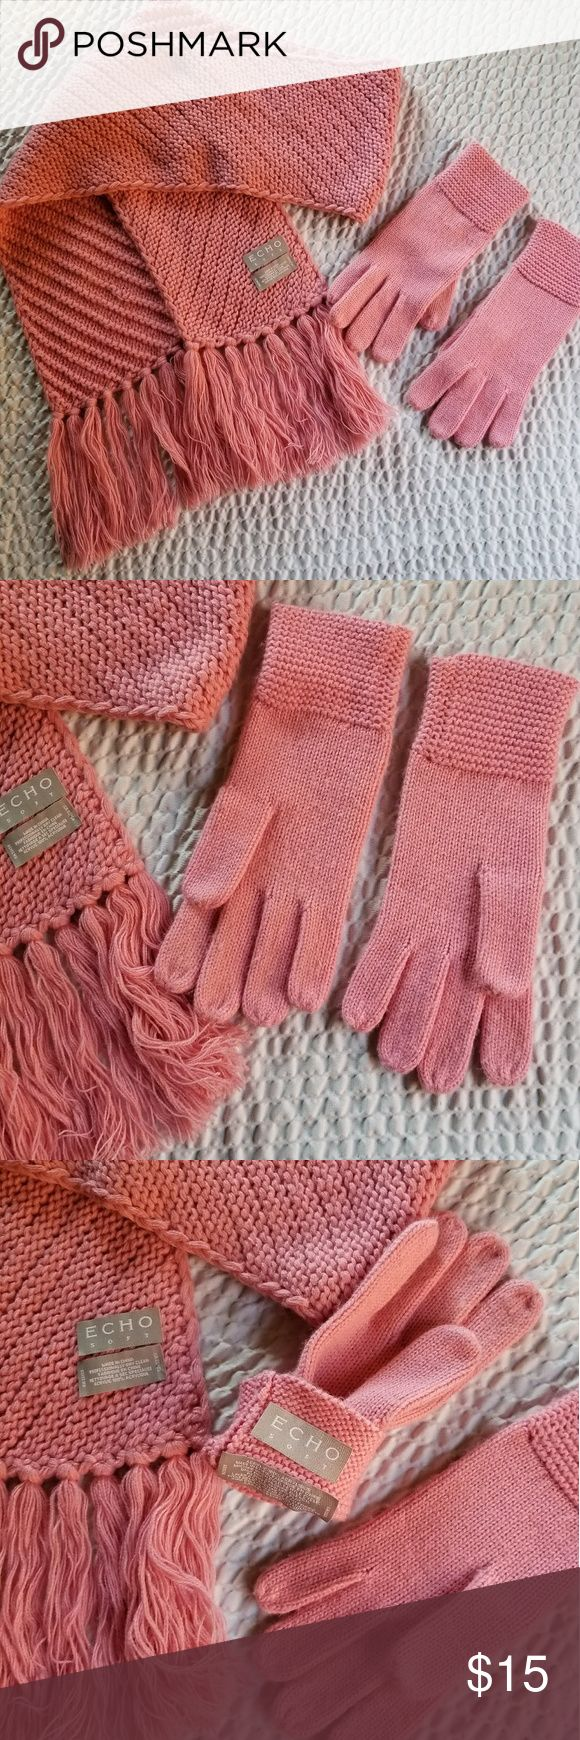 Echo Scarf/Gloves Set Super Soft Fringed Scarf & Gloves Set in a Really Pretty Pink Color ! Bought From Dillards. The Scarf is Basically NWOT and NEVER WORN. The Gloves I Did Wear 2, or Maybe 3 Times. They Have Been Hand Washed and Ready to Wear ! Echo Accessories Gloves & Mittens